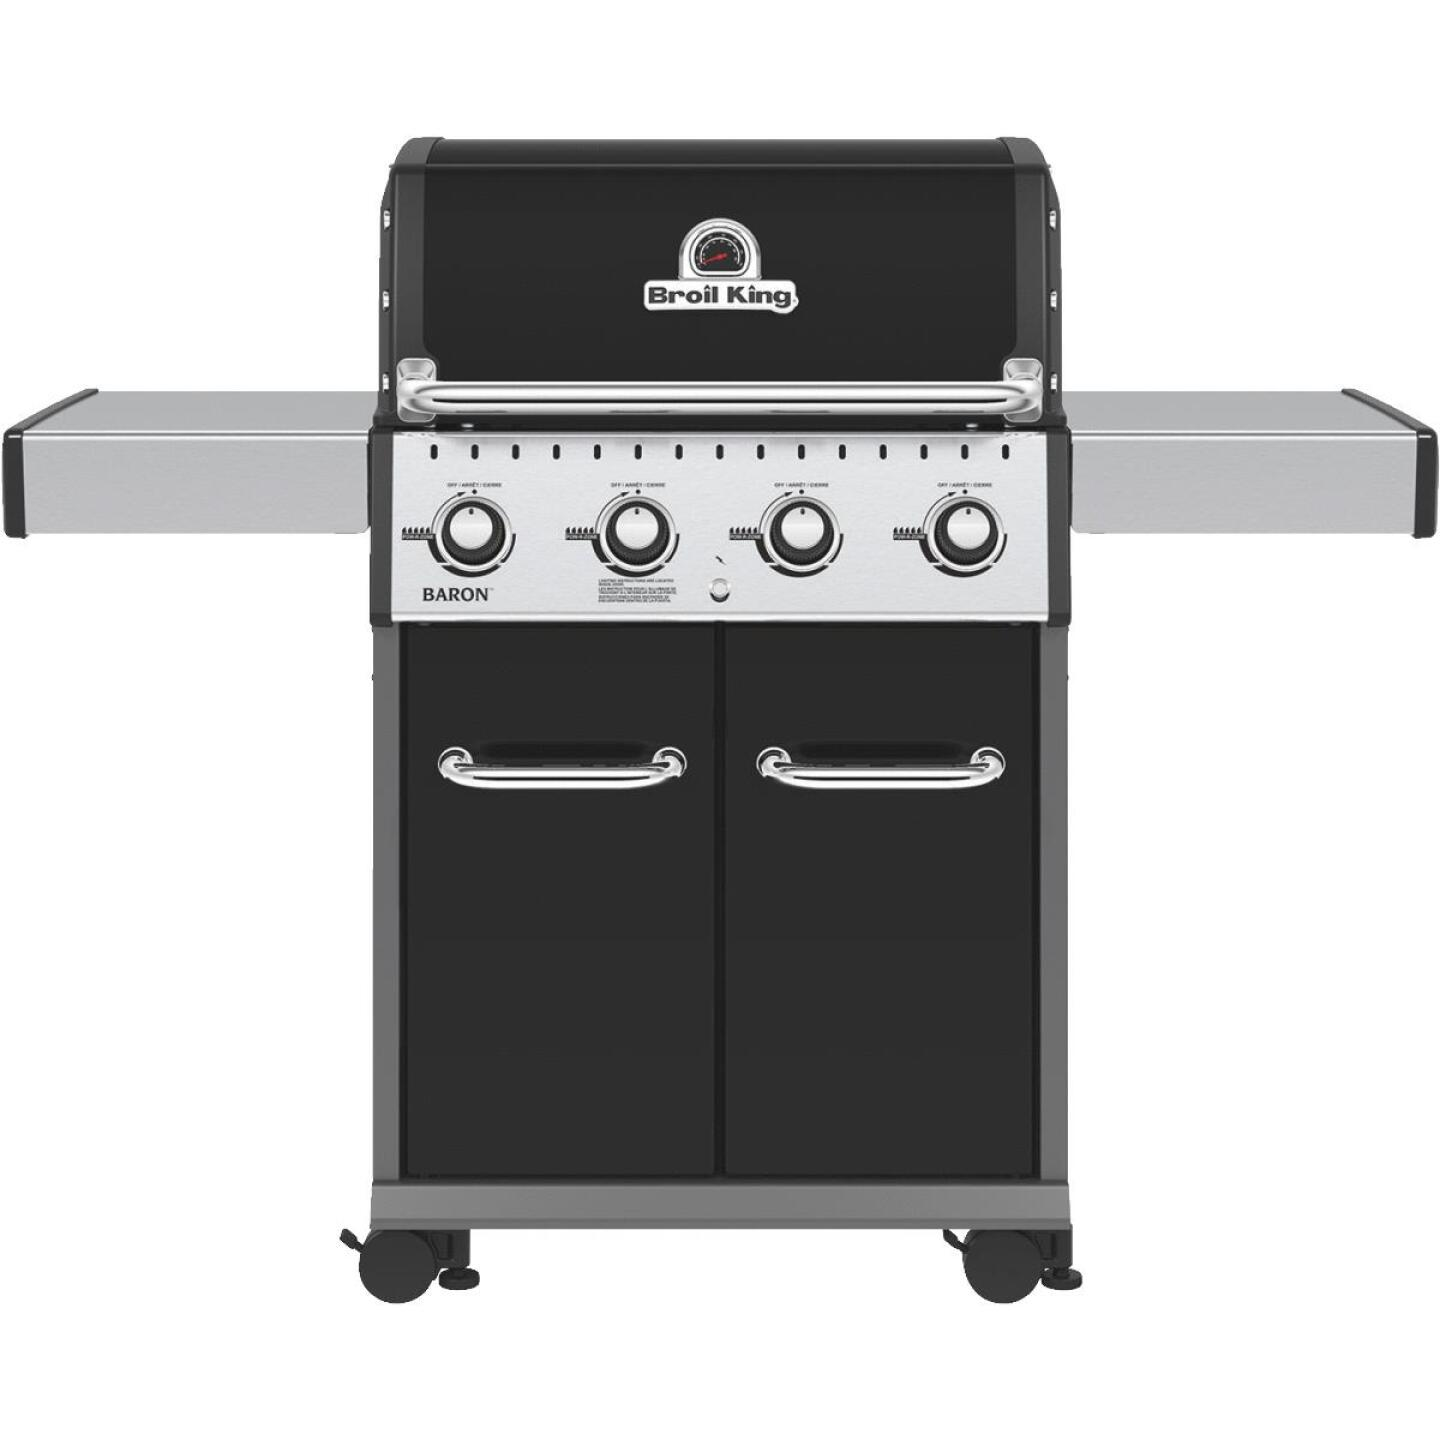 Broil King Baron 420 Pro Special Edition Black 4-Burner Stainless Steel 40,000 BTU LP Gas Grill Image 1